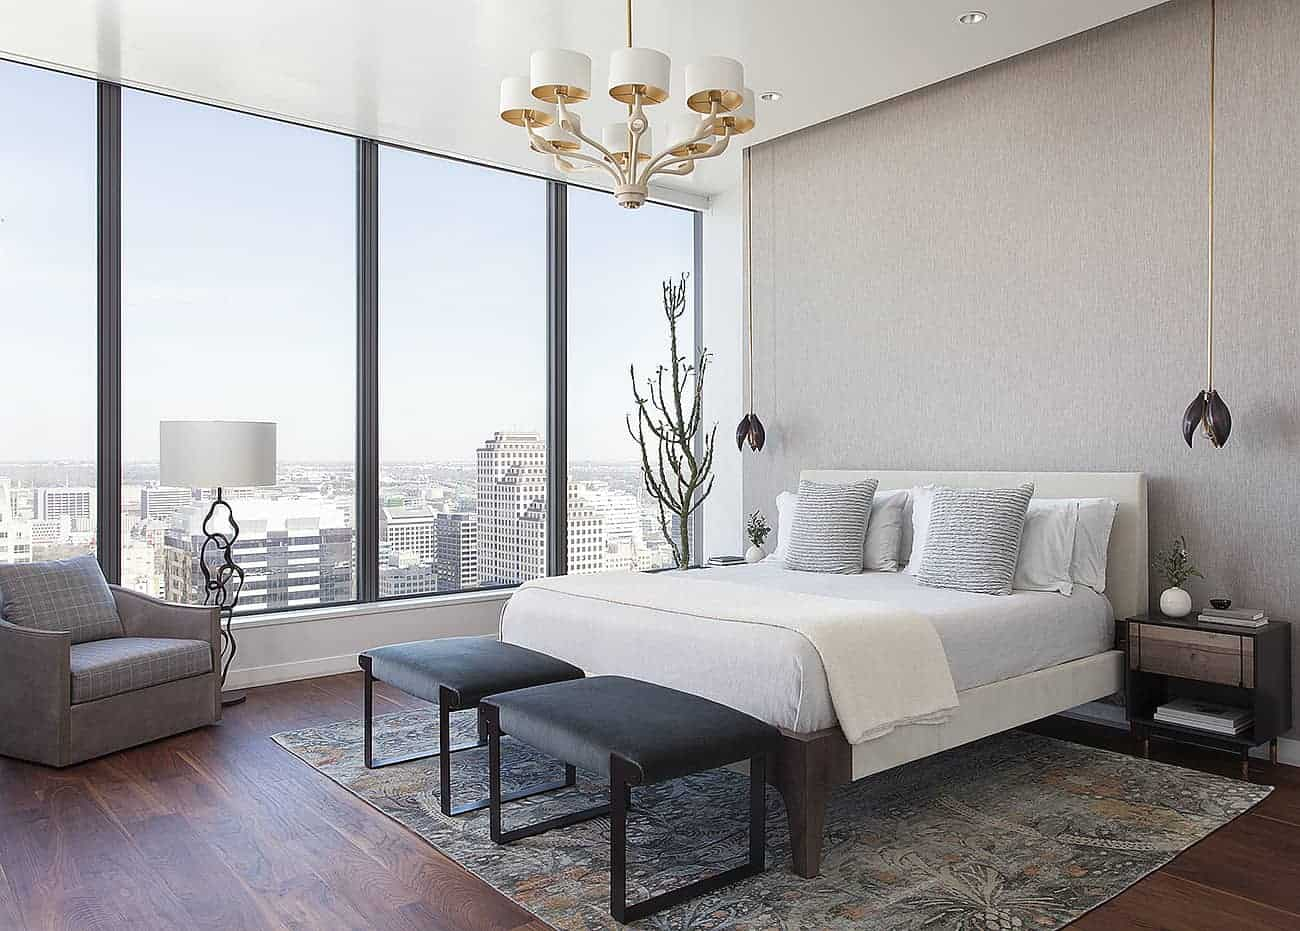 The dark hardwood flooring of this master bedroom is brightened by the large glass walls on the right side of the bed that has a light gray headboard against a gray concrete wall accented with a pair of flower-like pendant lights.